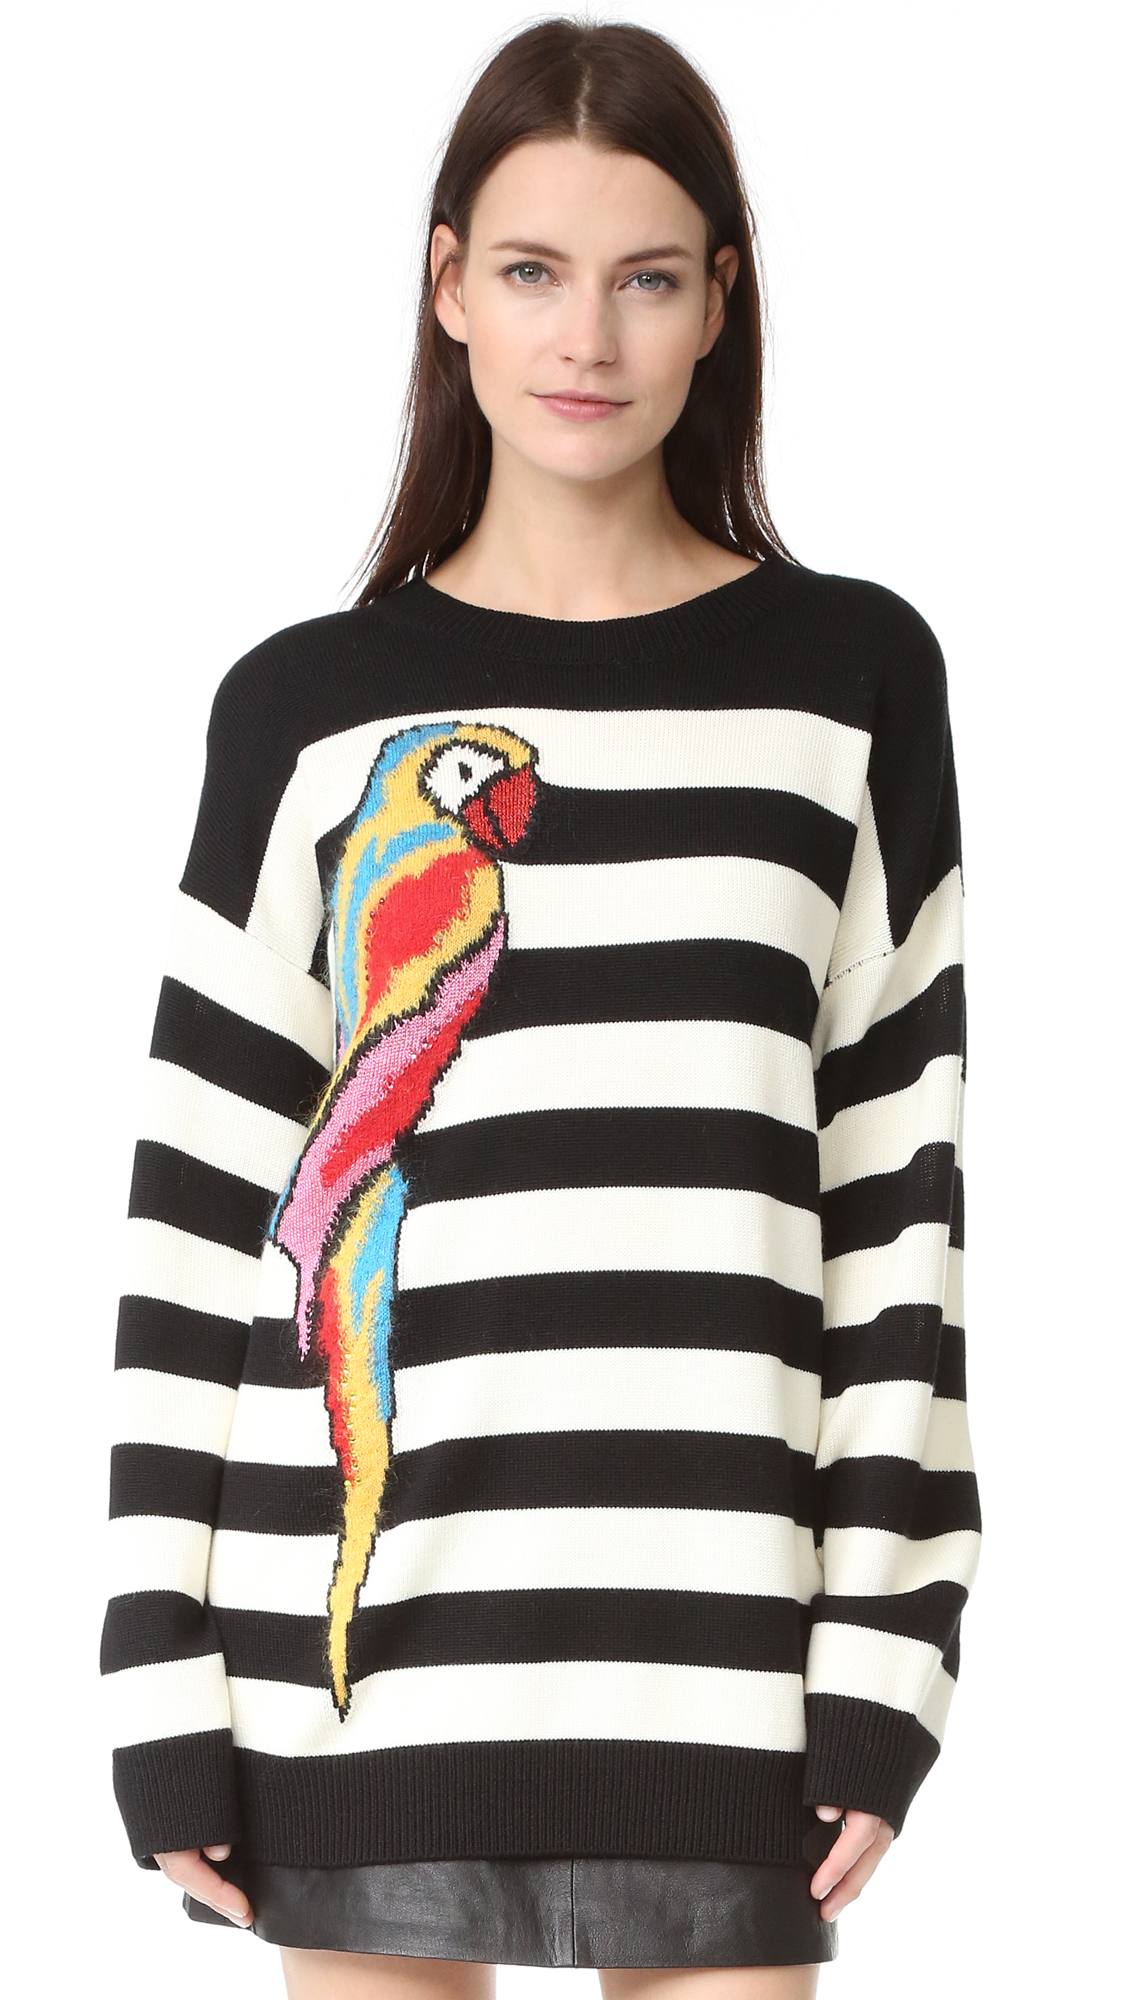 marc jacobs female marc jacobs long sleeve crew sweater black multi